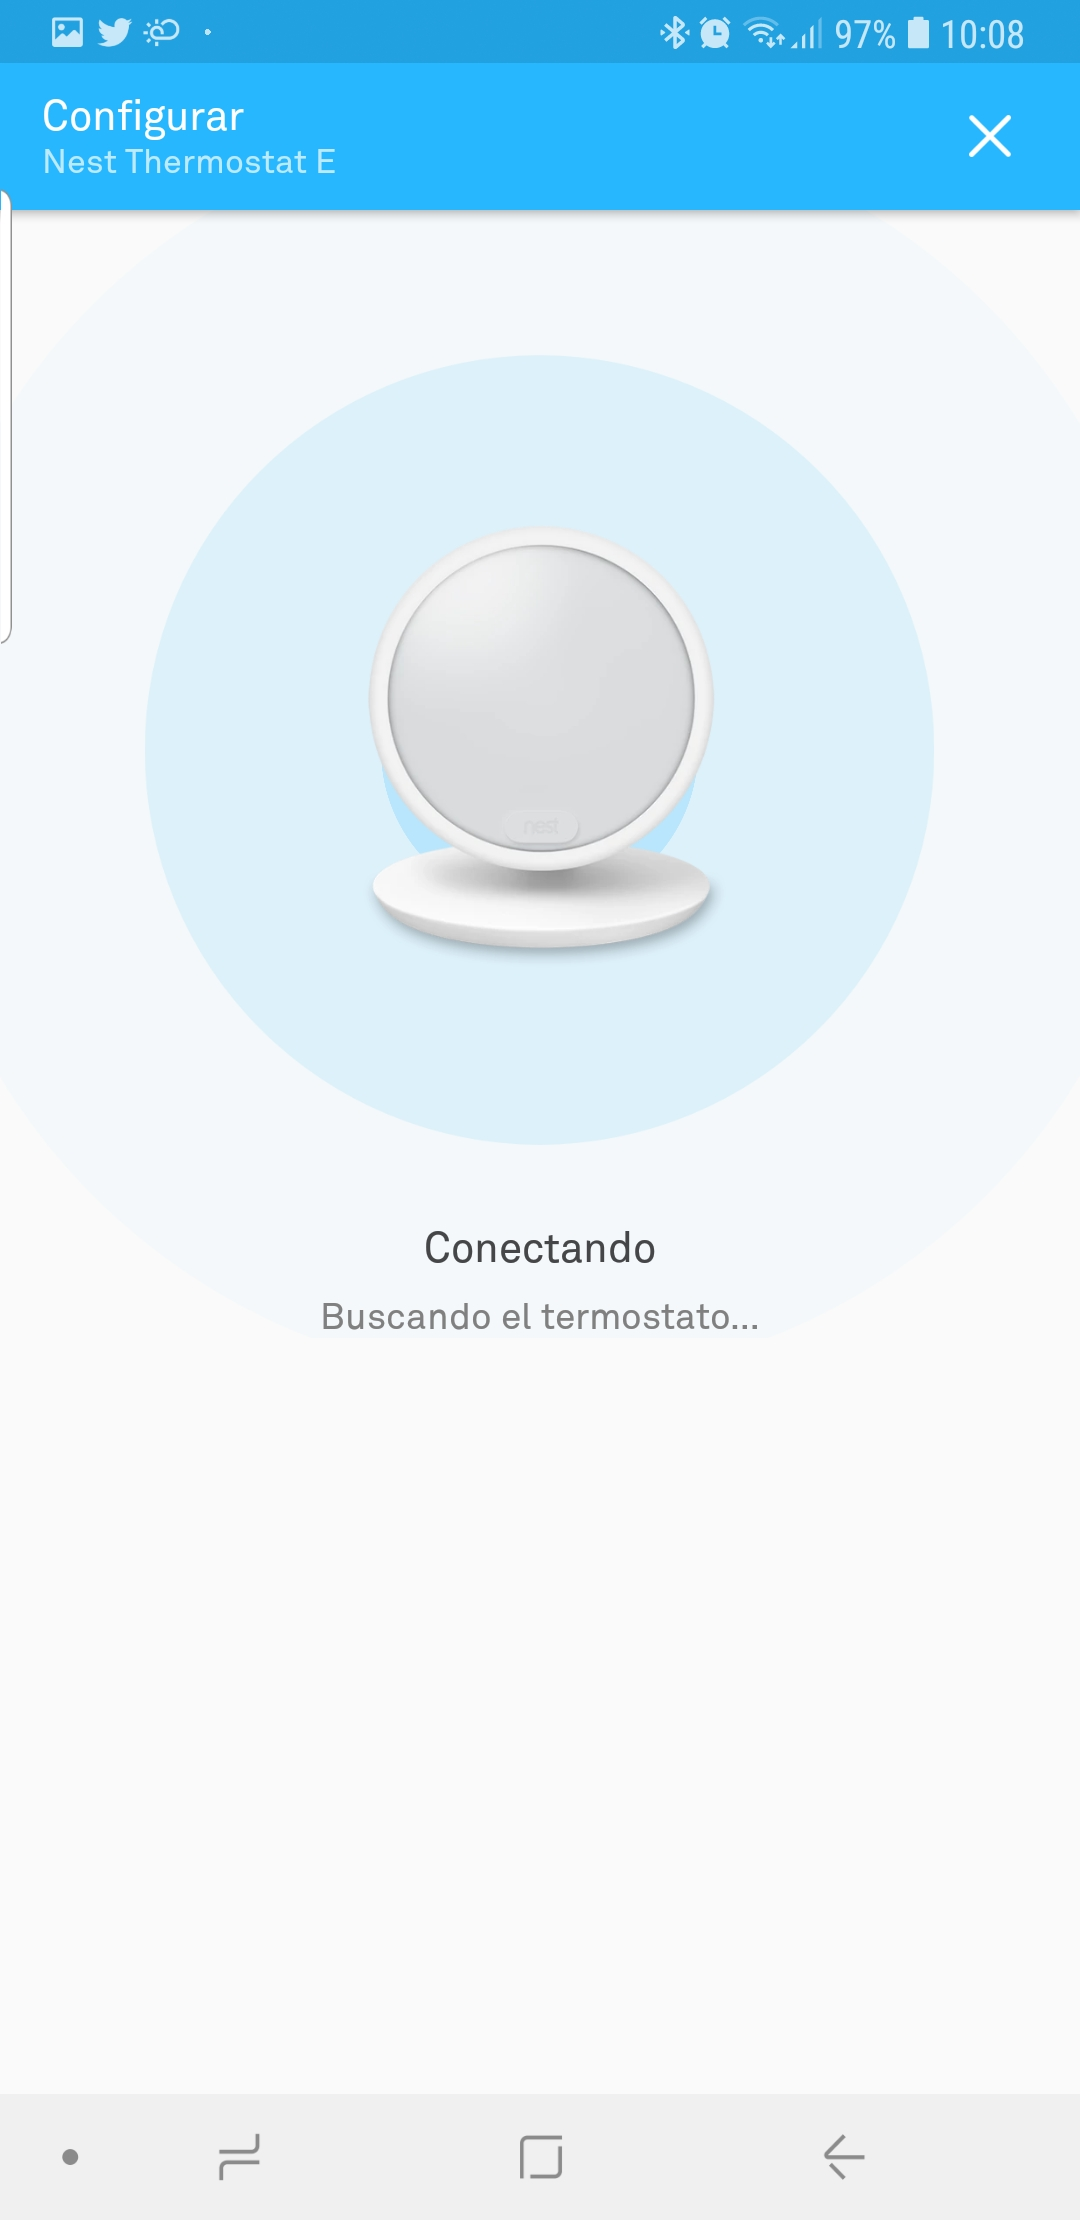 Nest Thermostat E, escuela de calor 39